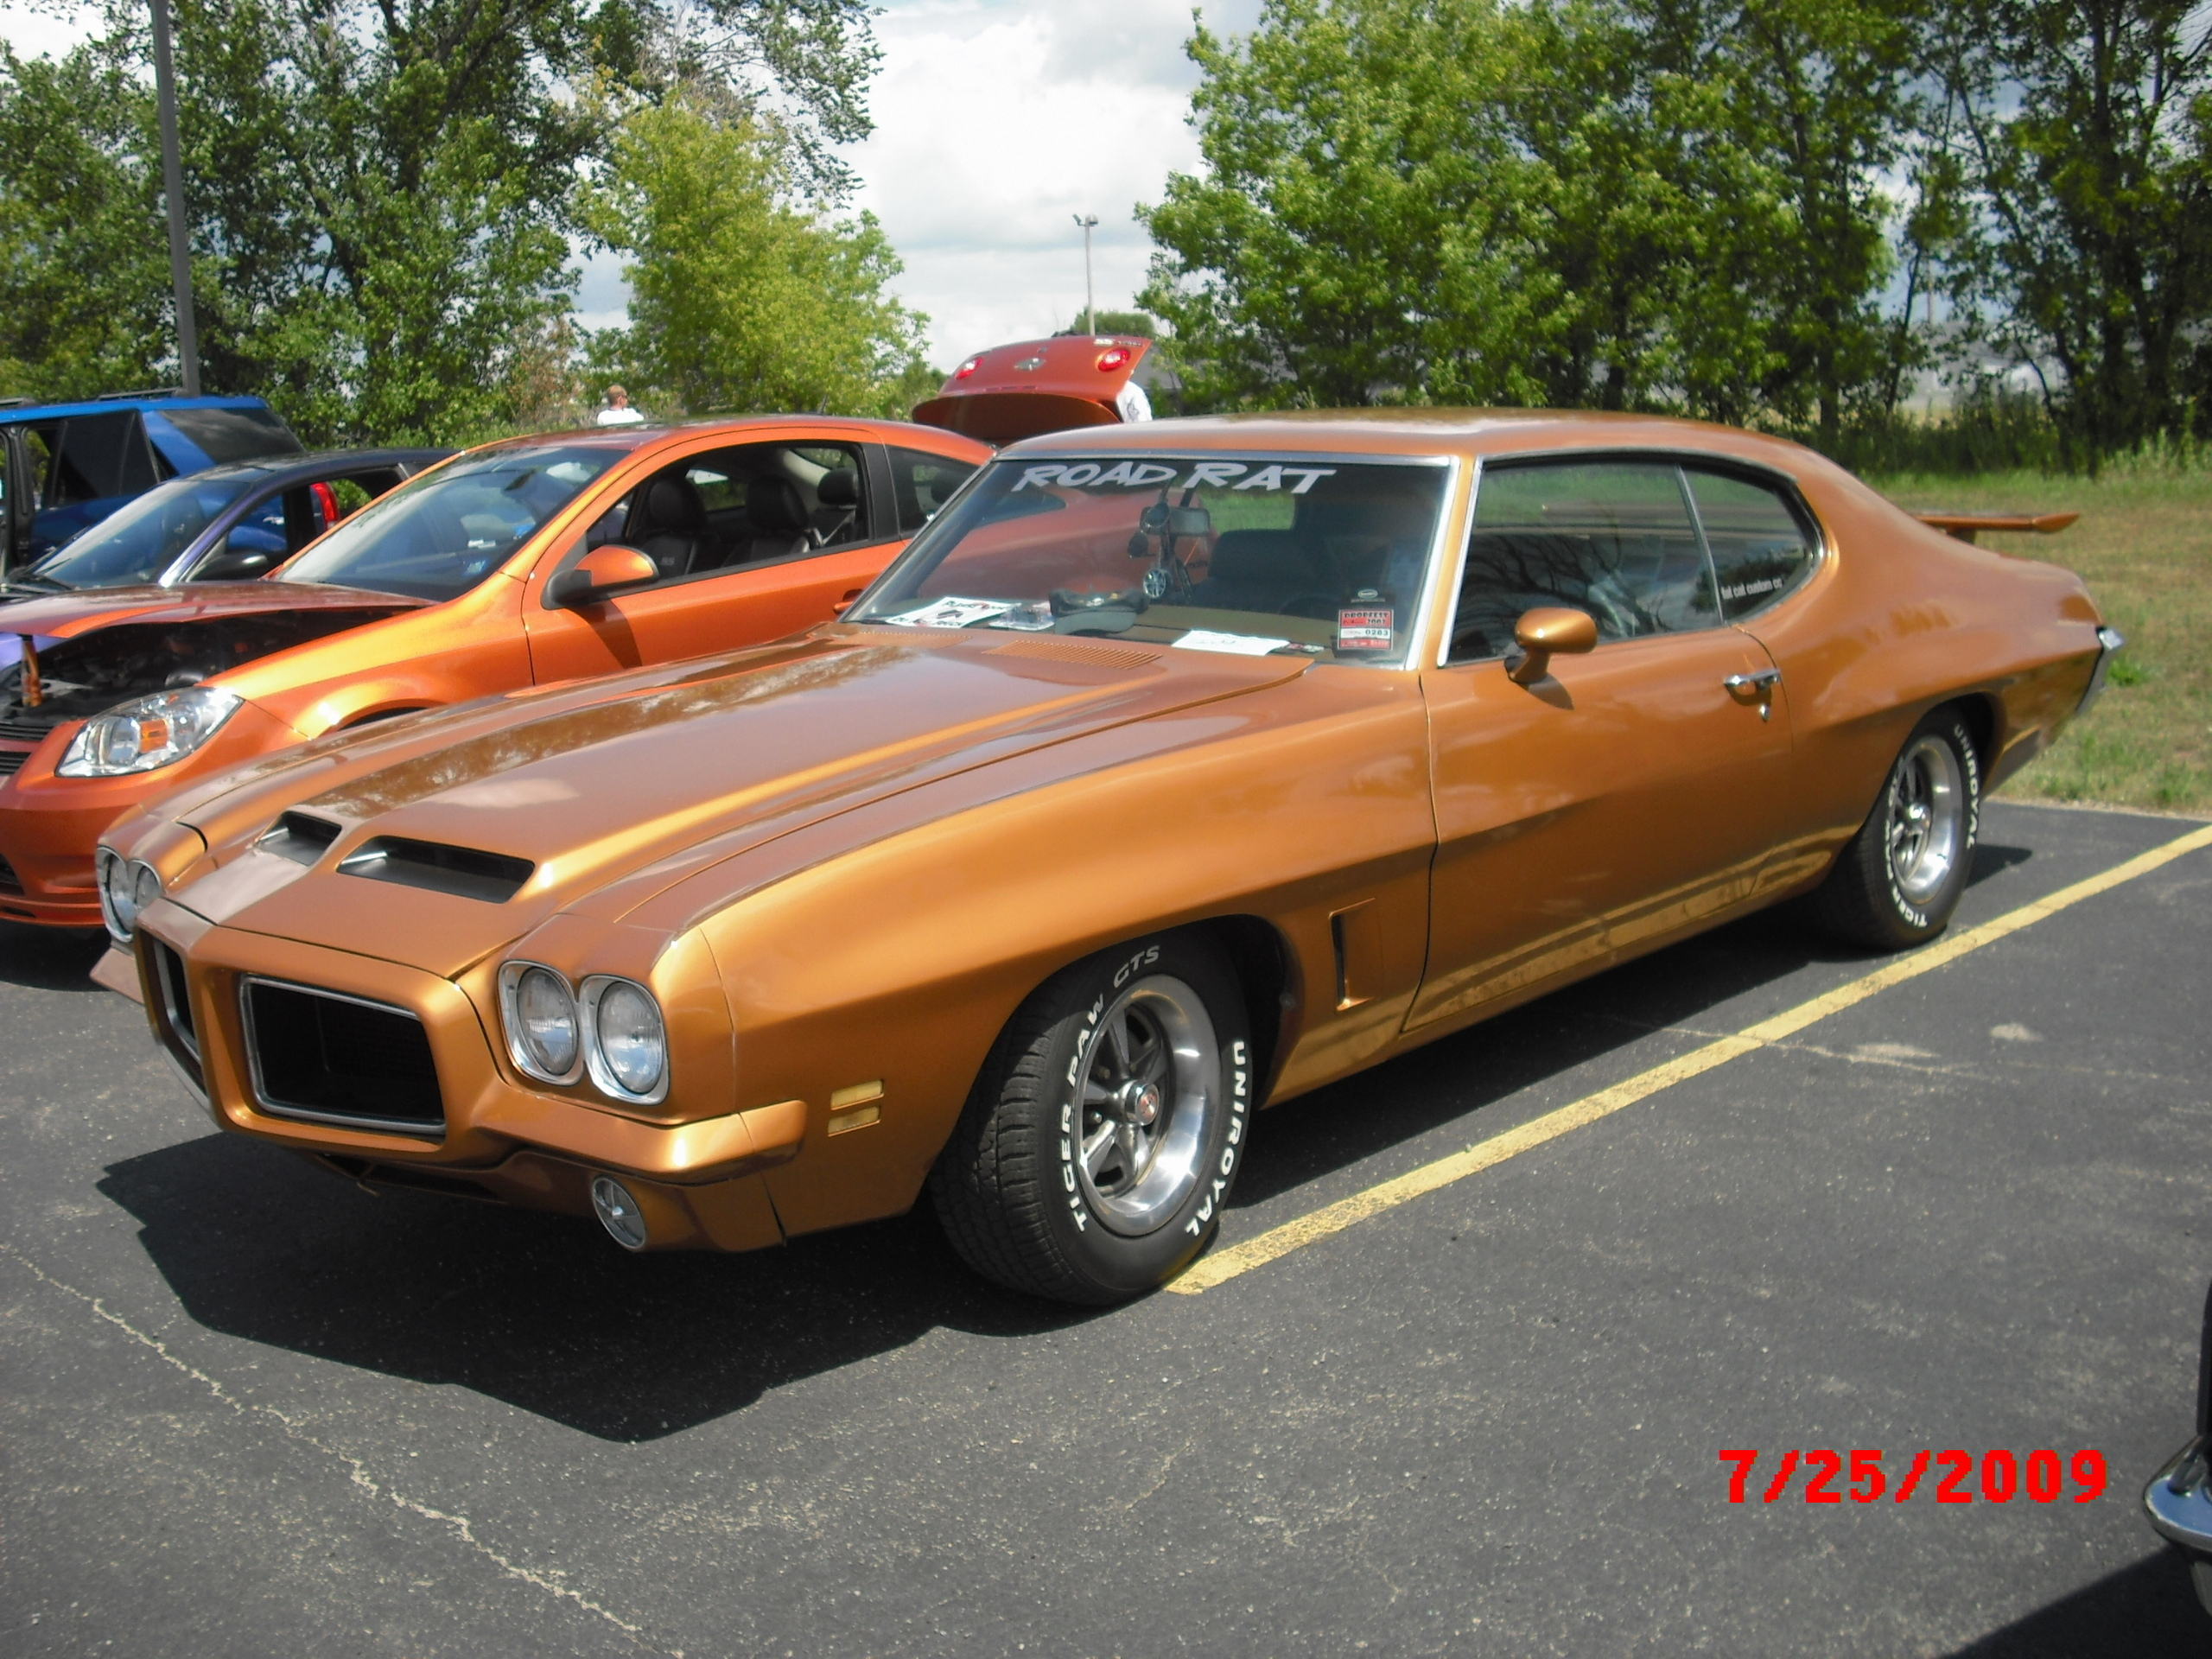 My daddys 72 gto muscle cars photo 8086220 fanpop - Pictures of muscle cars ...